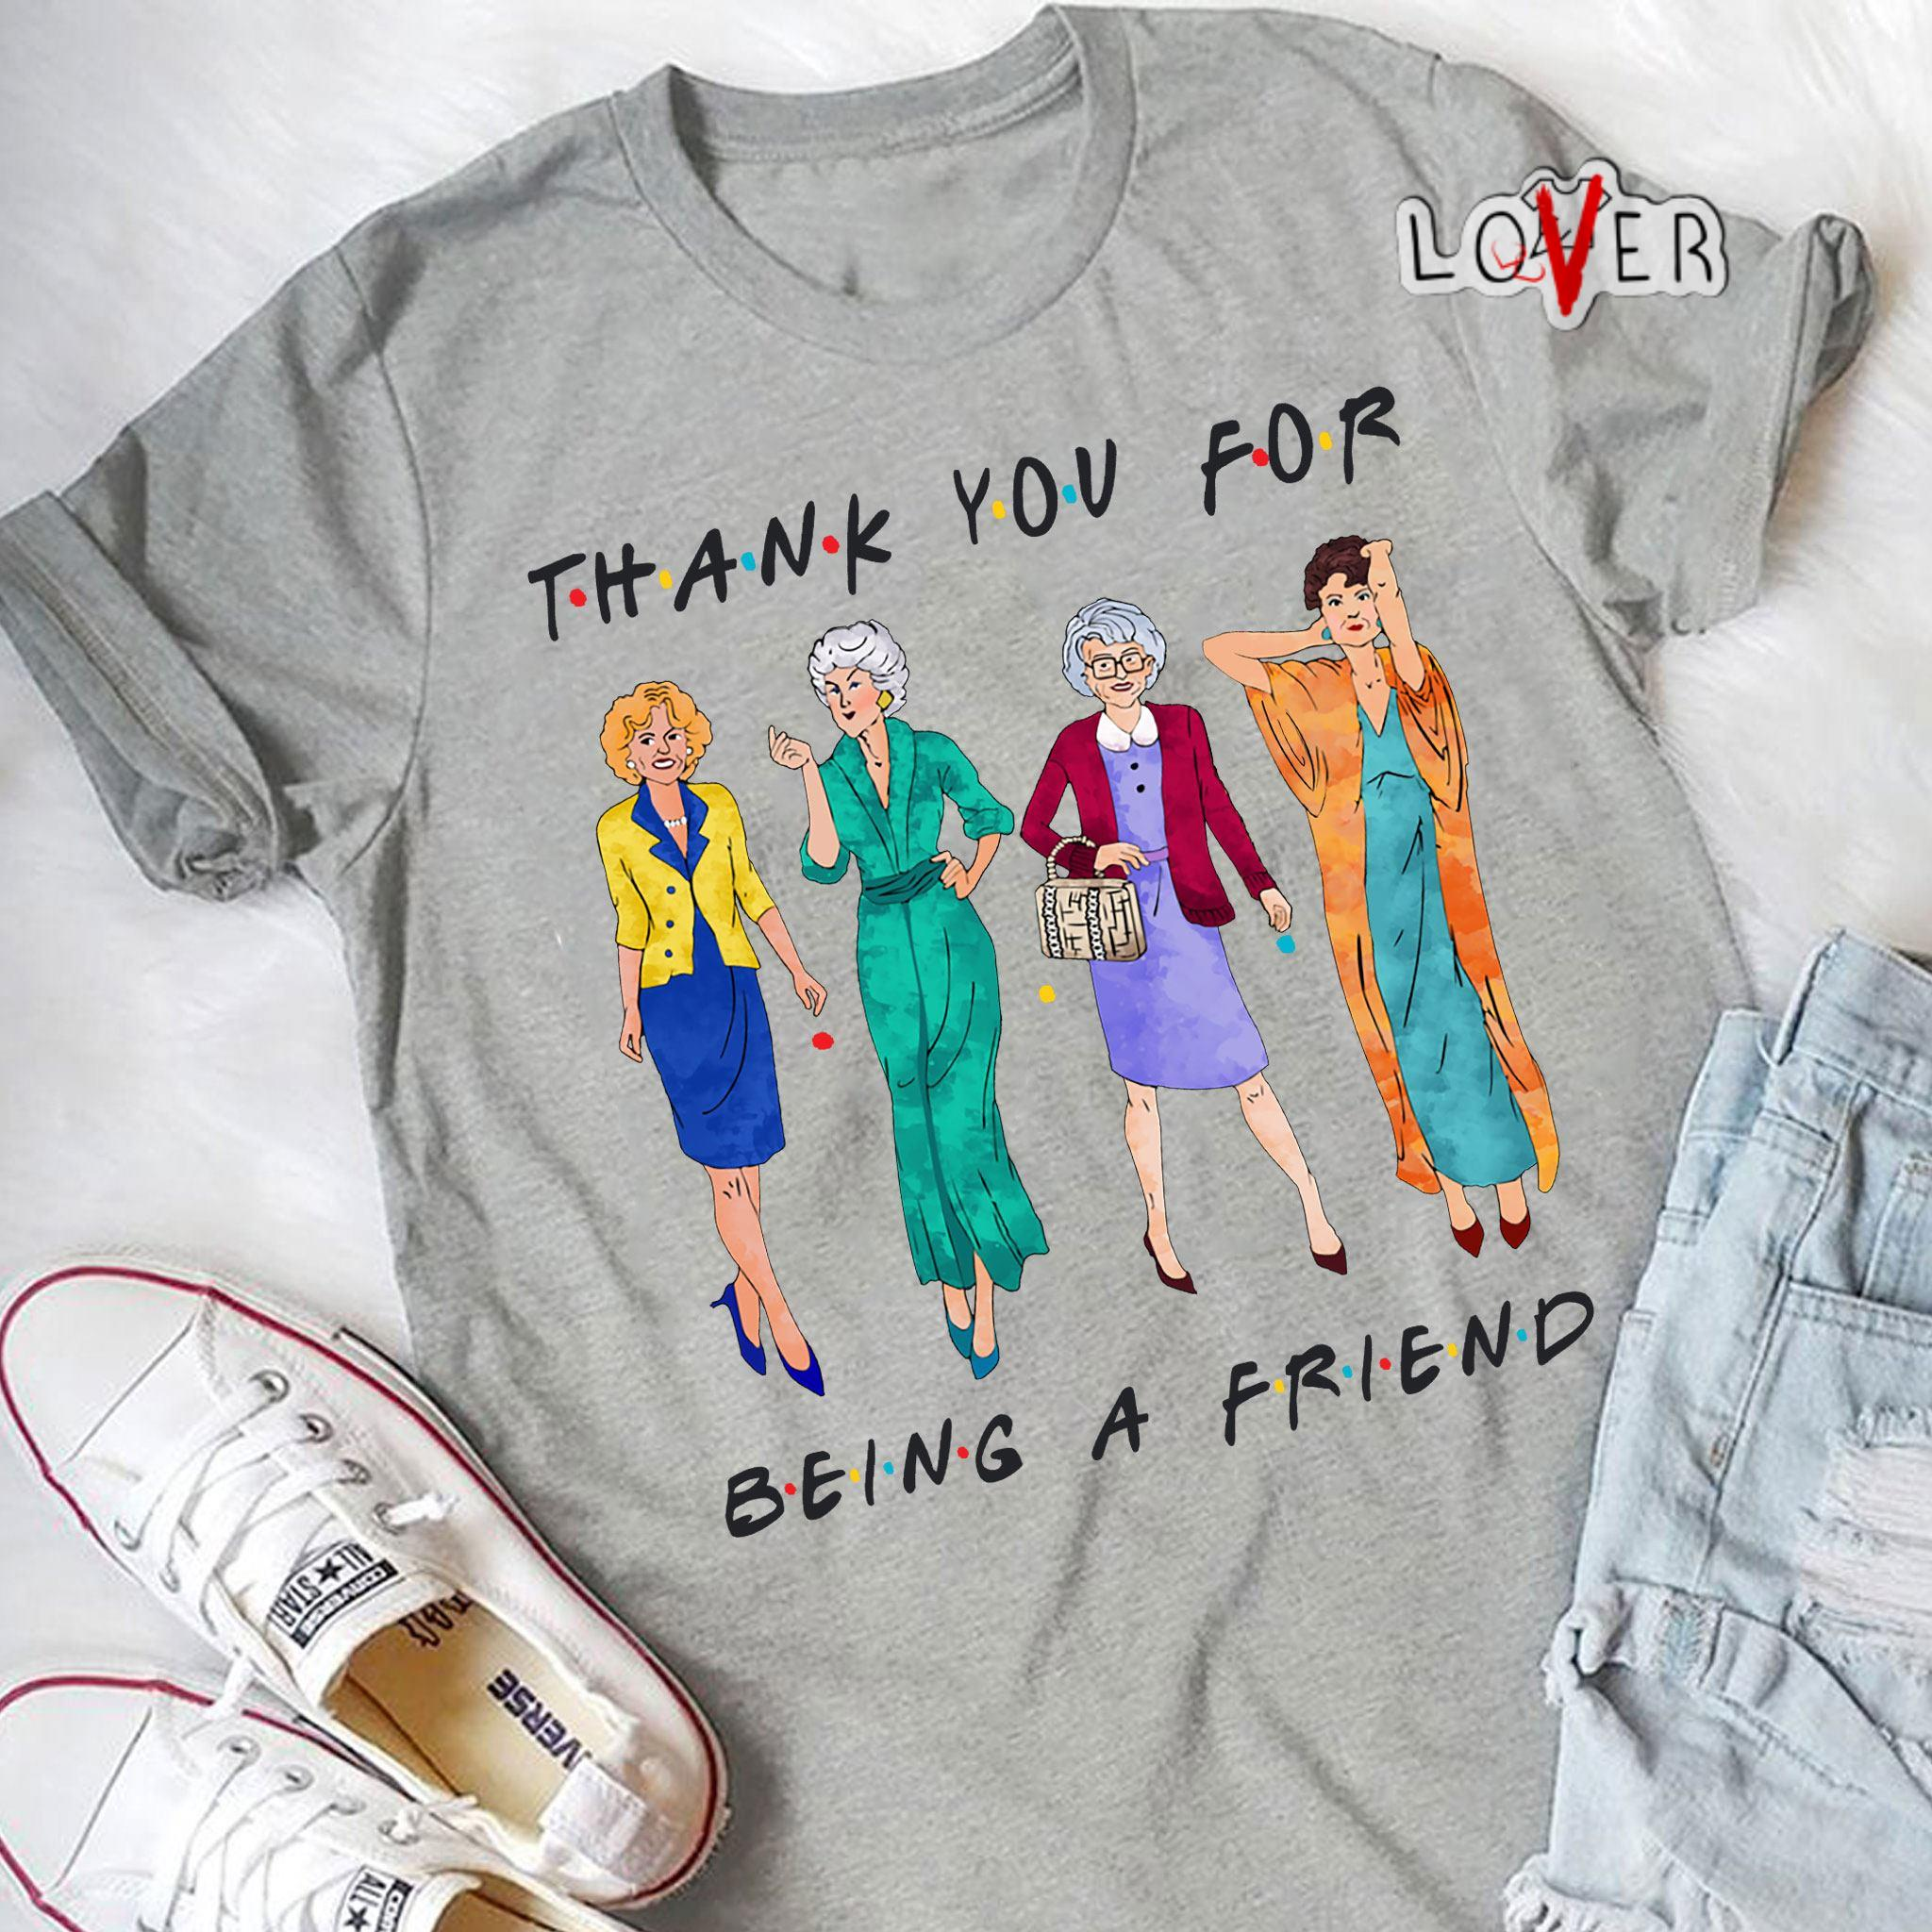 Thank you for being a friendThank you for being a friend Golden Girls shirtGolden Girls shirt